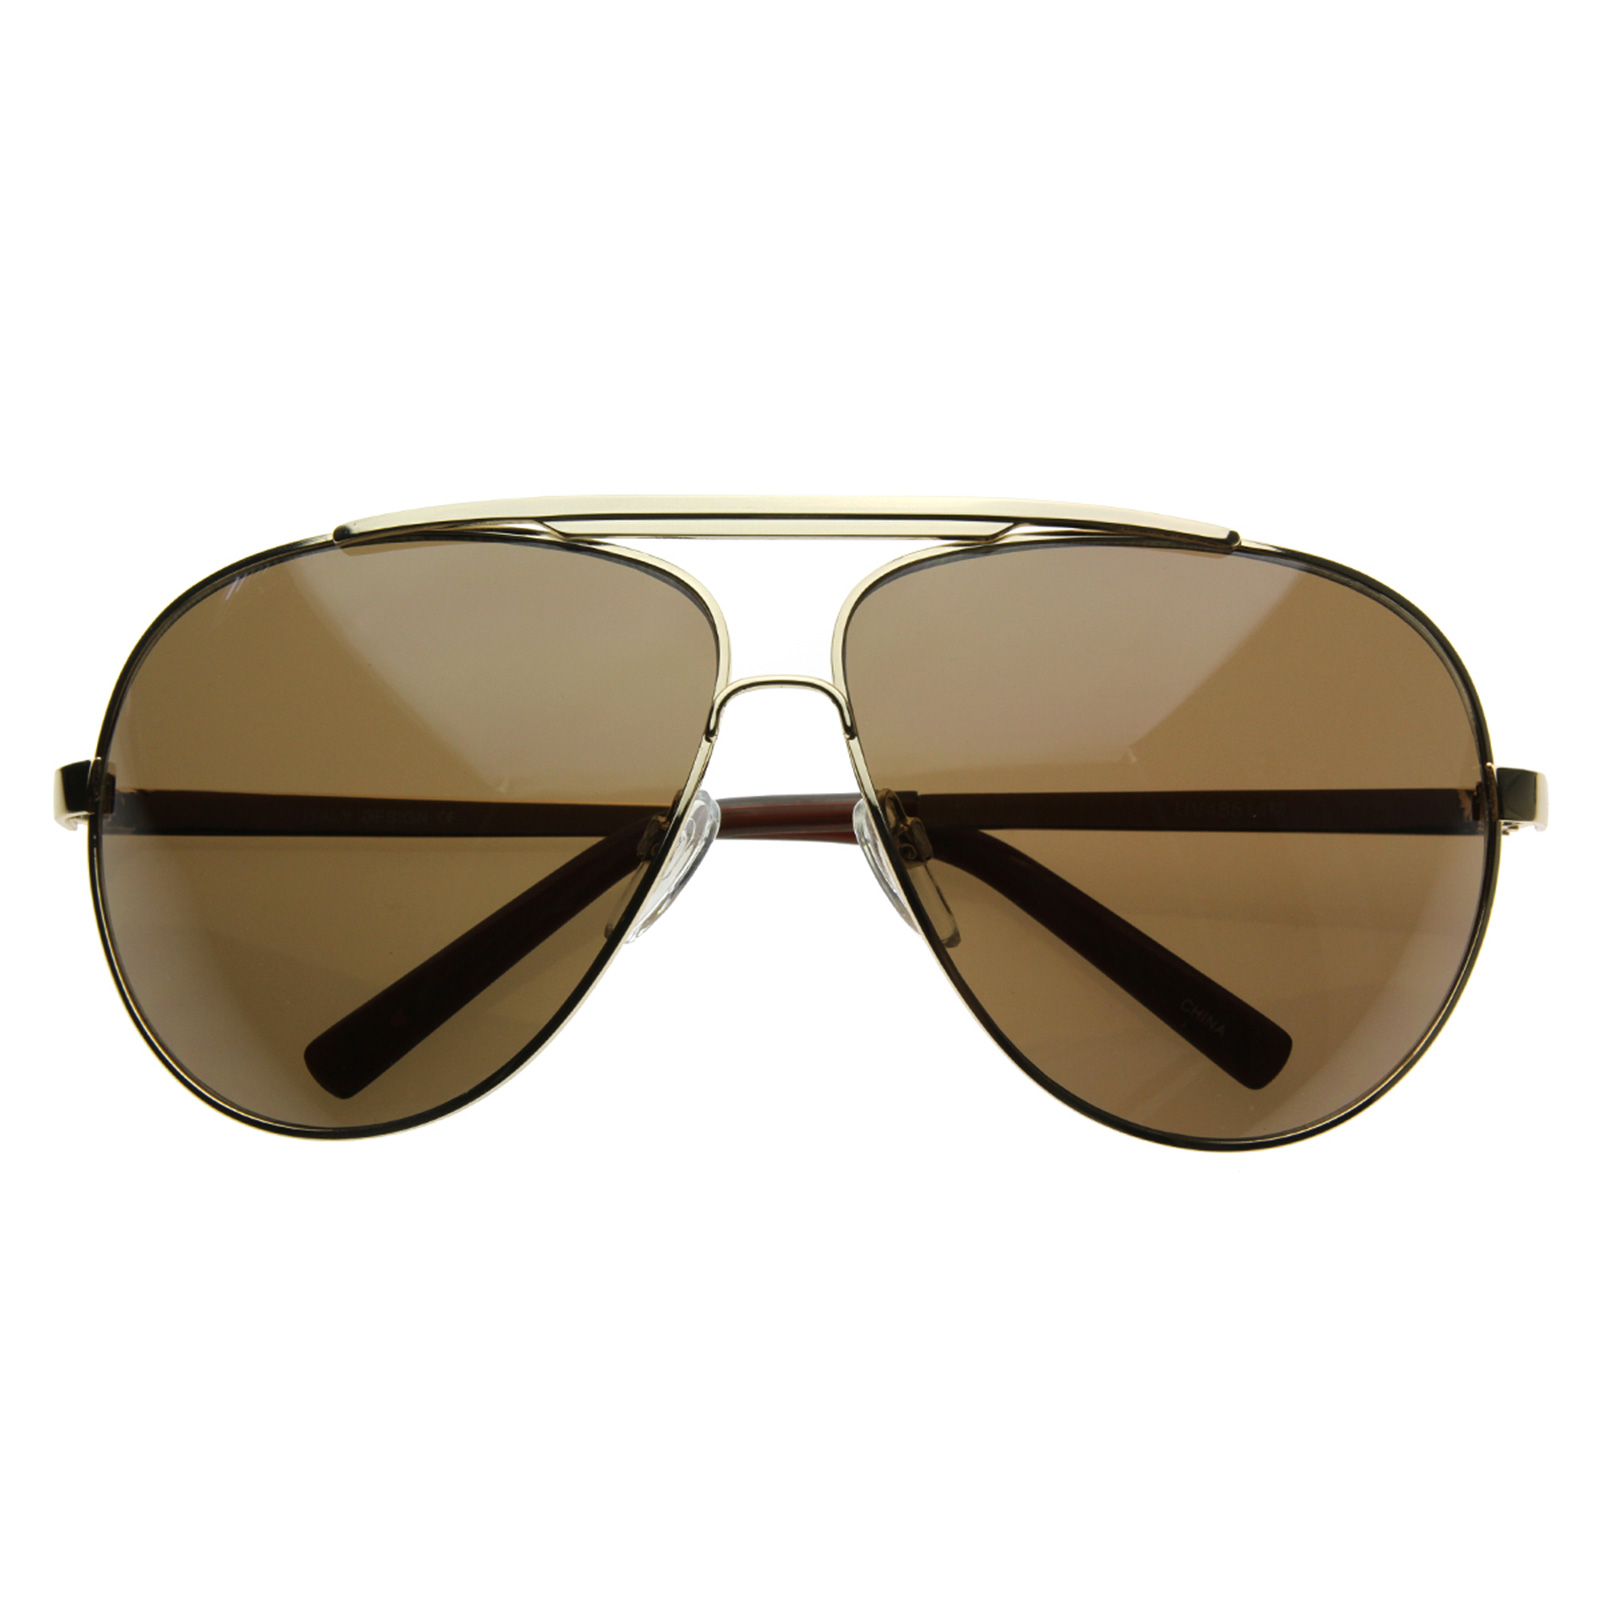 Oversized Gold Frame Sunglasses : Extra Large Full Metal Thin Frame Oversize Mirrored ...